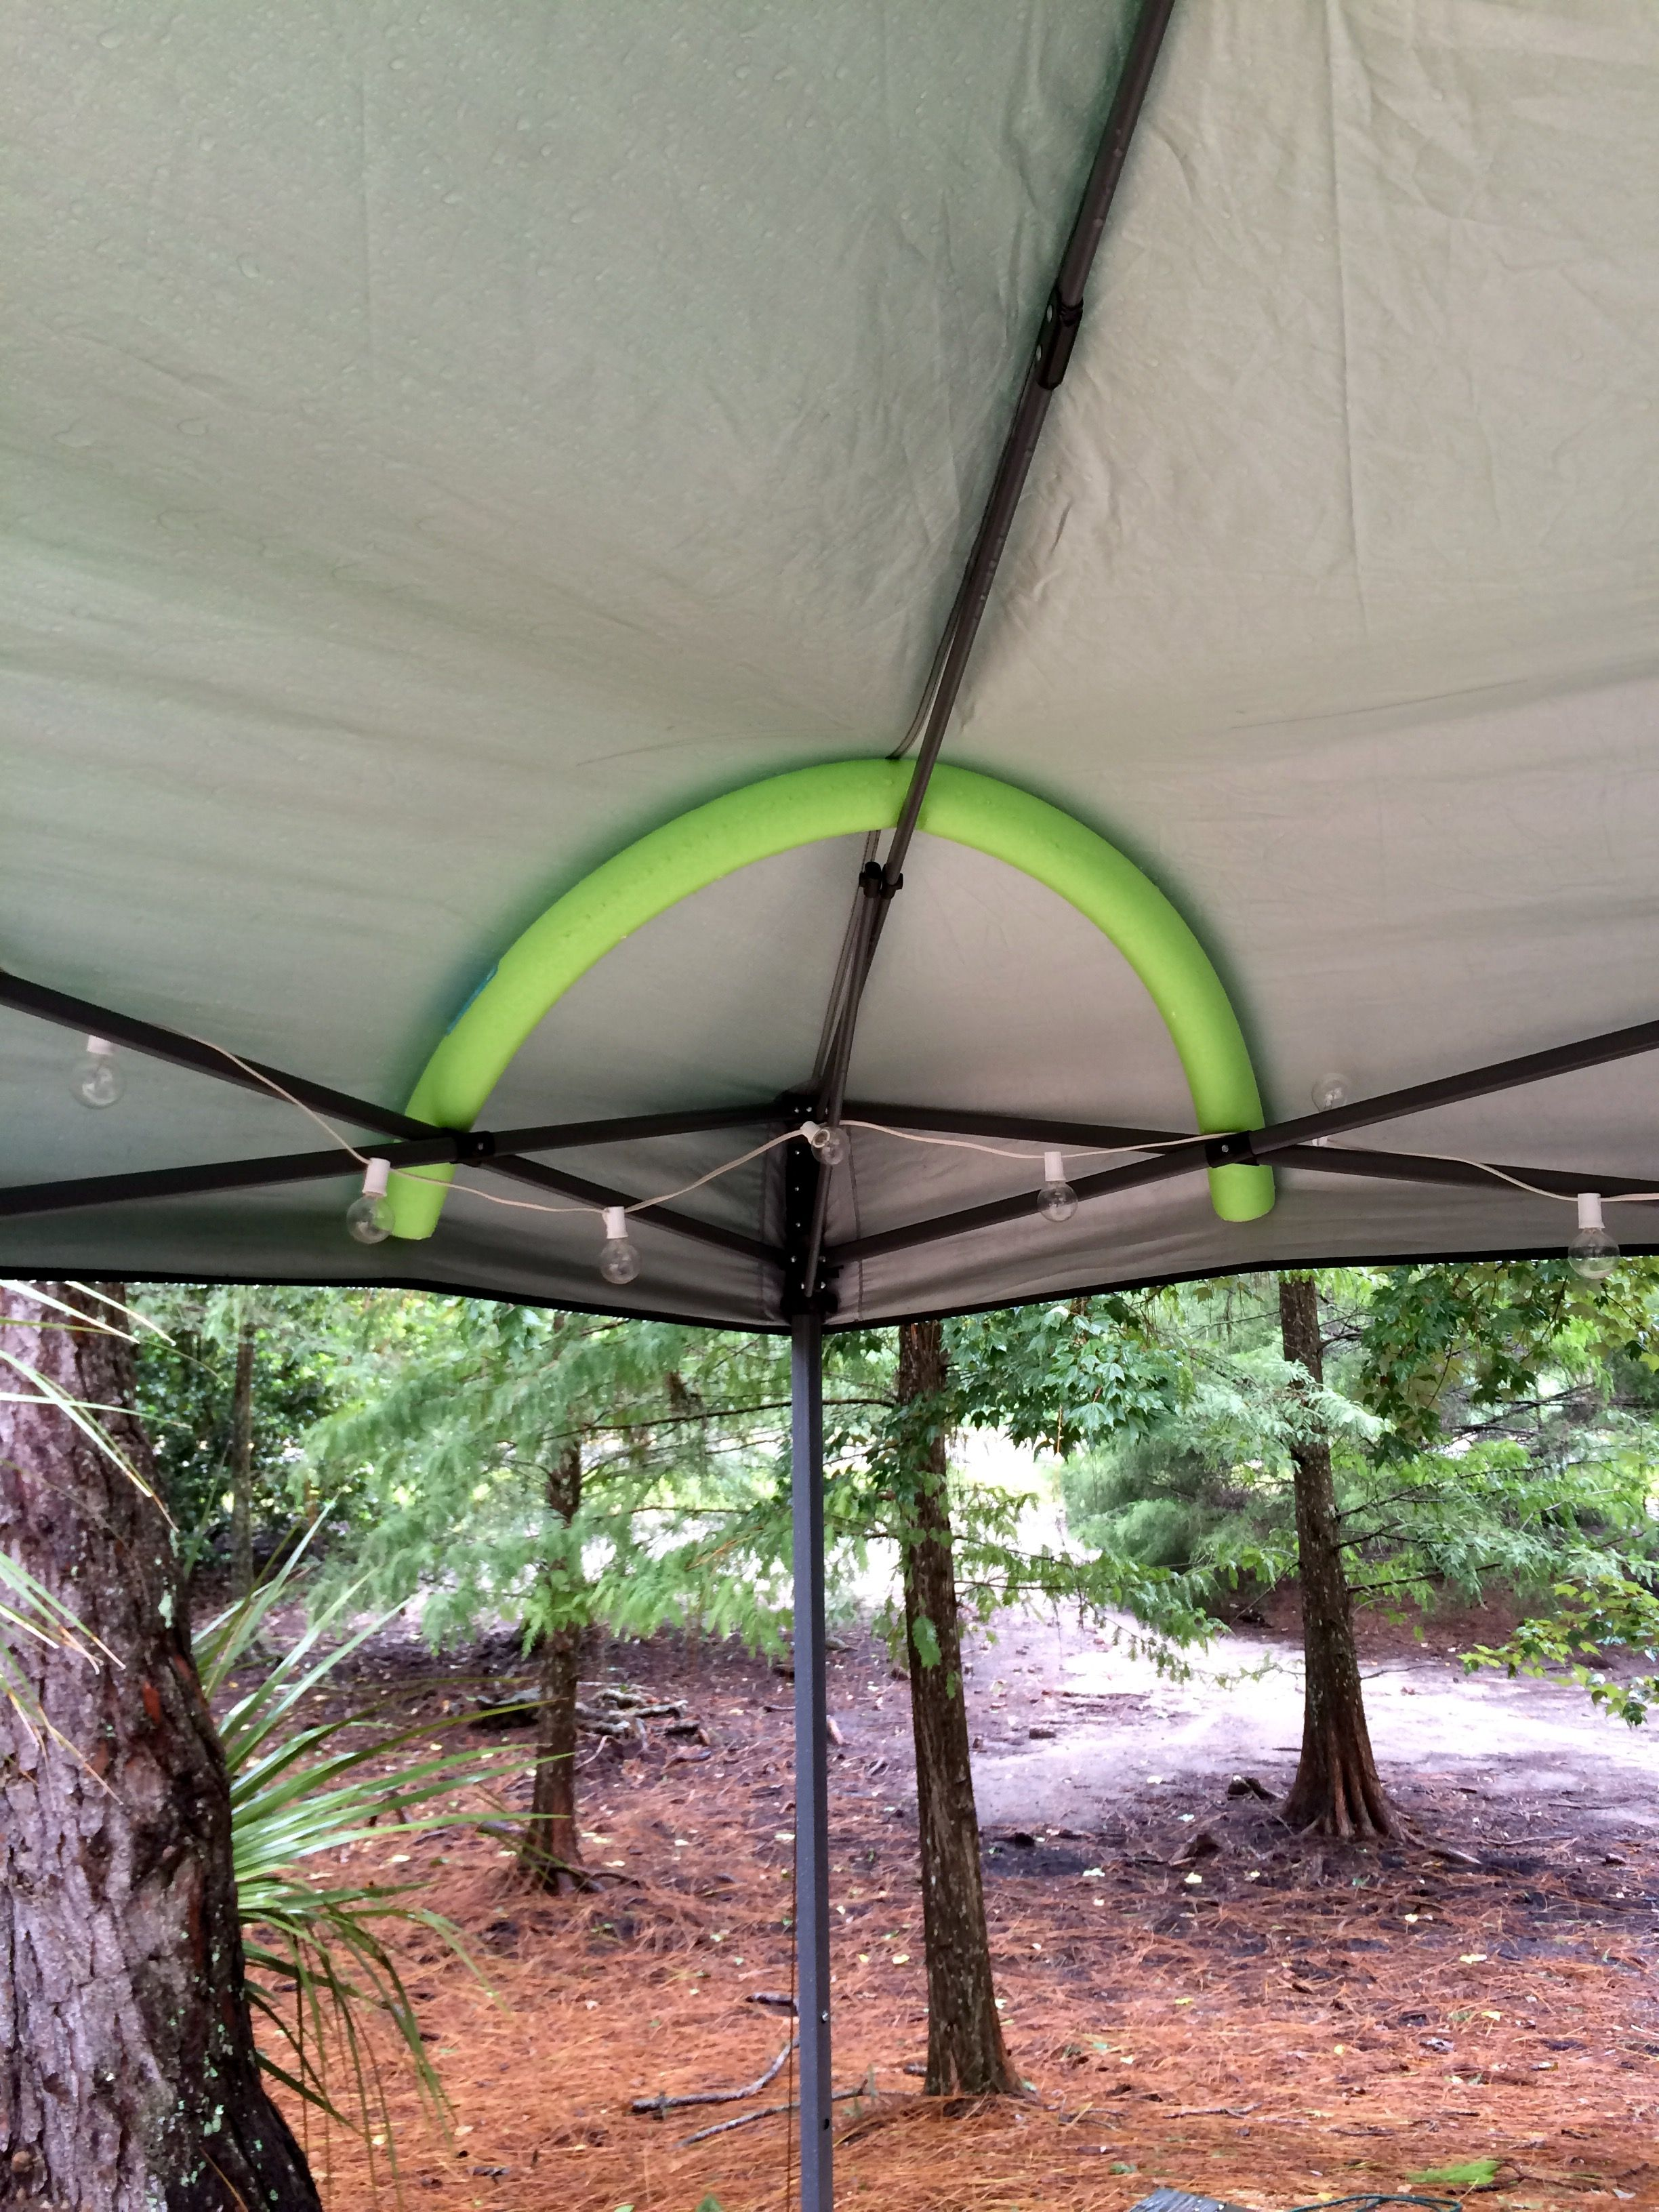 Works great for easy up tents when\u2026 : easy up tent - afamca.org